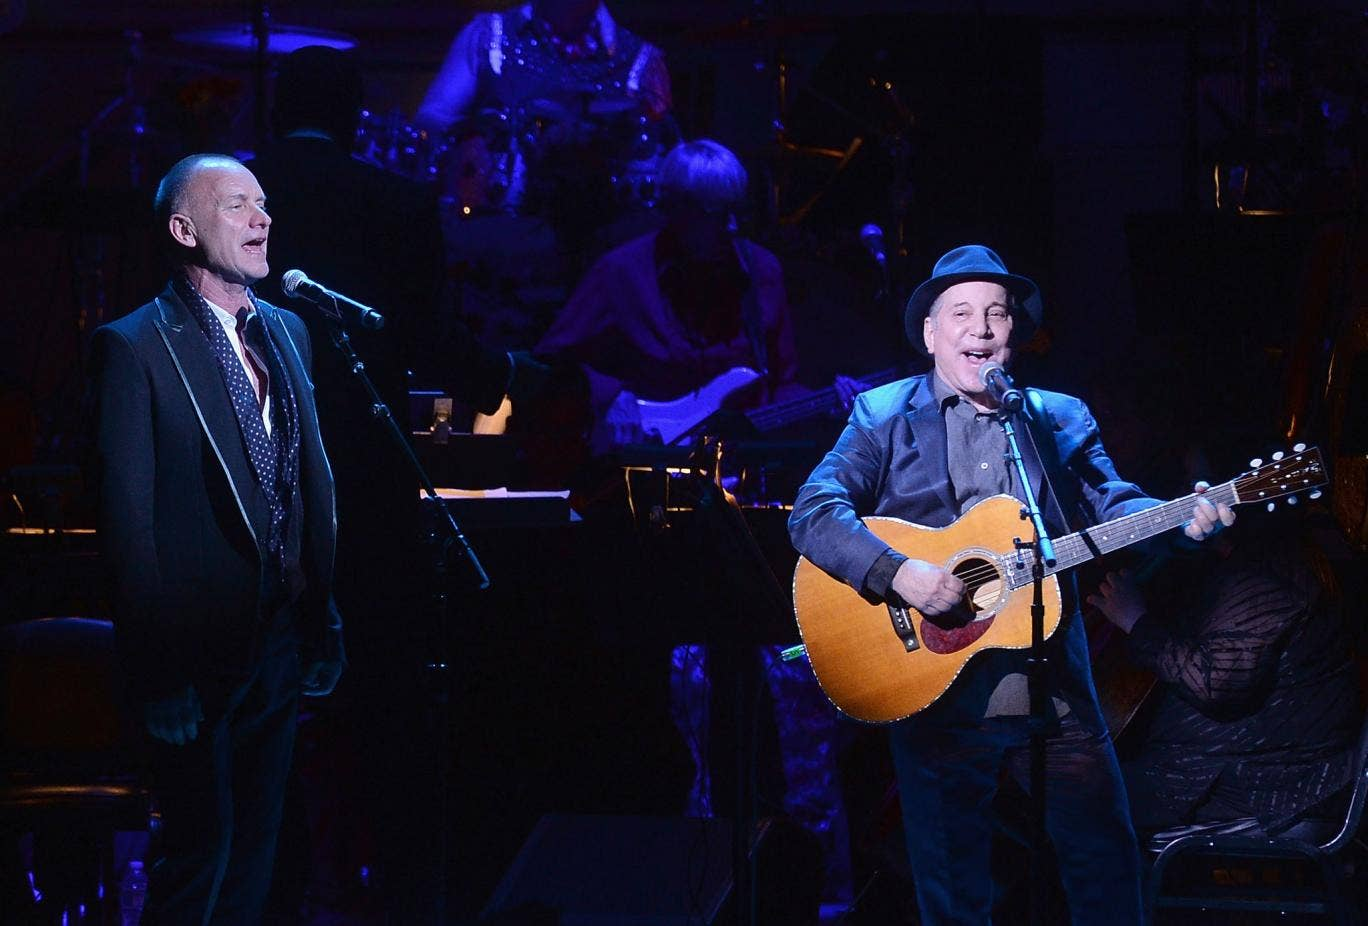 Sting and Paul Simon on stage The Sting